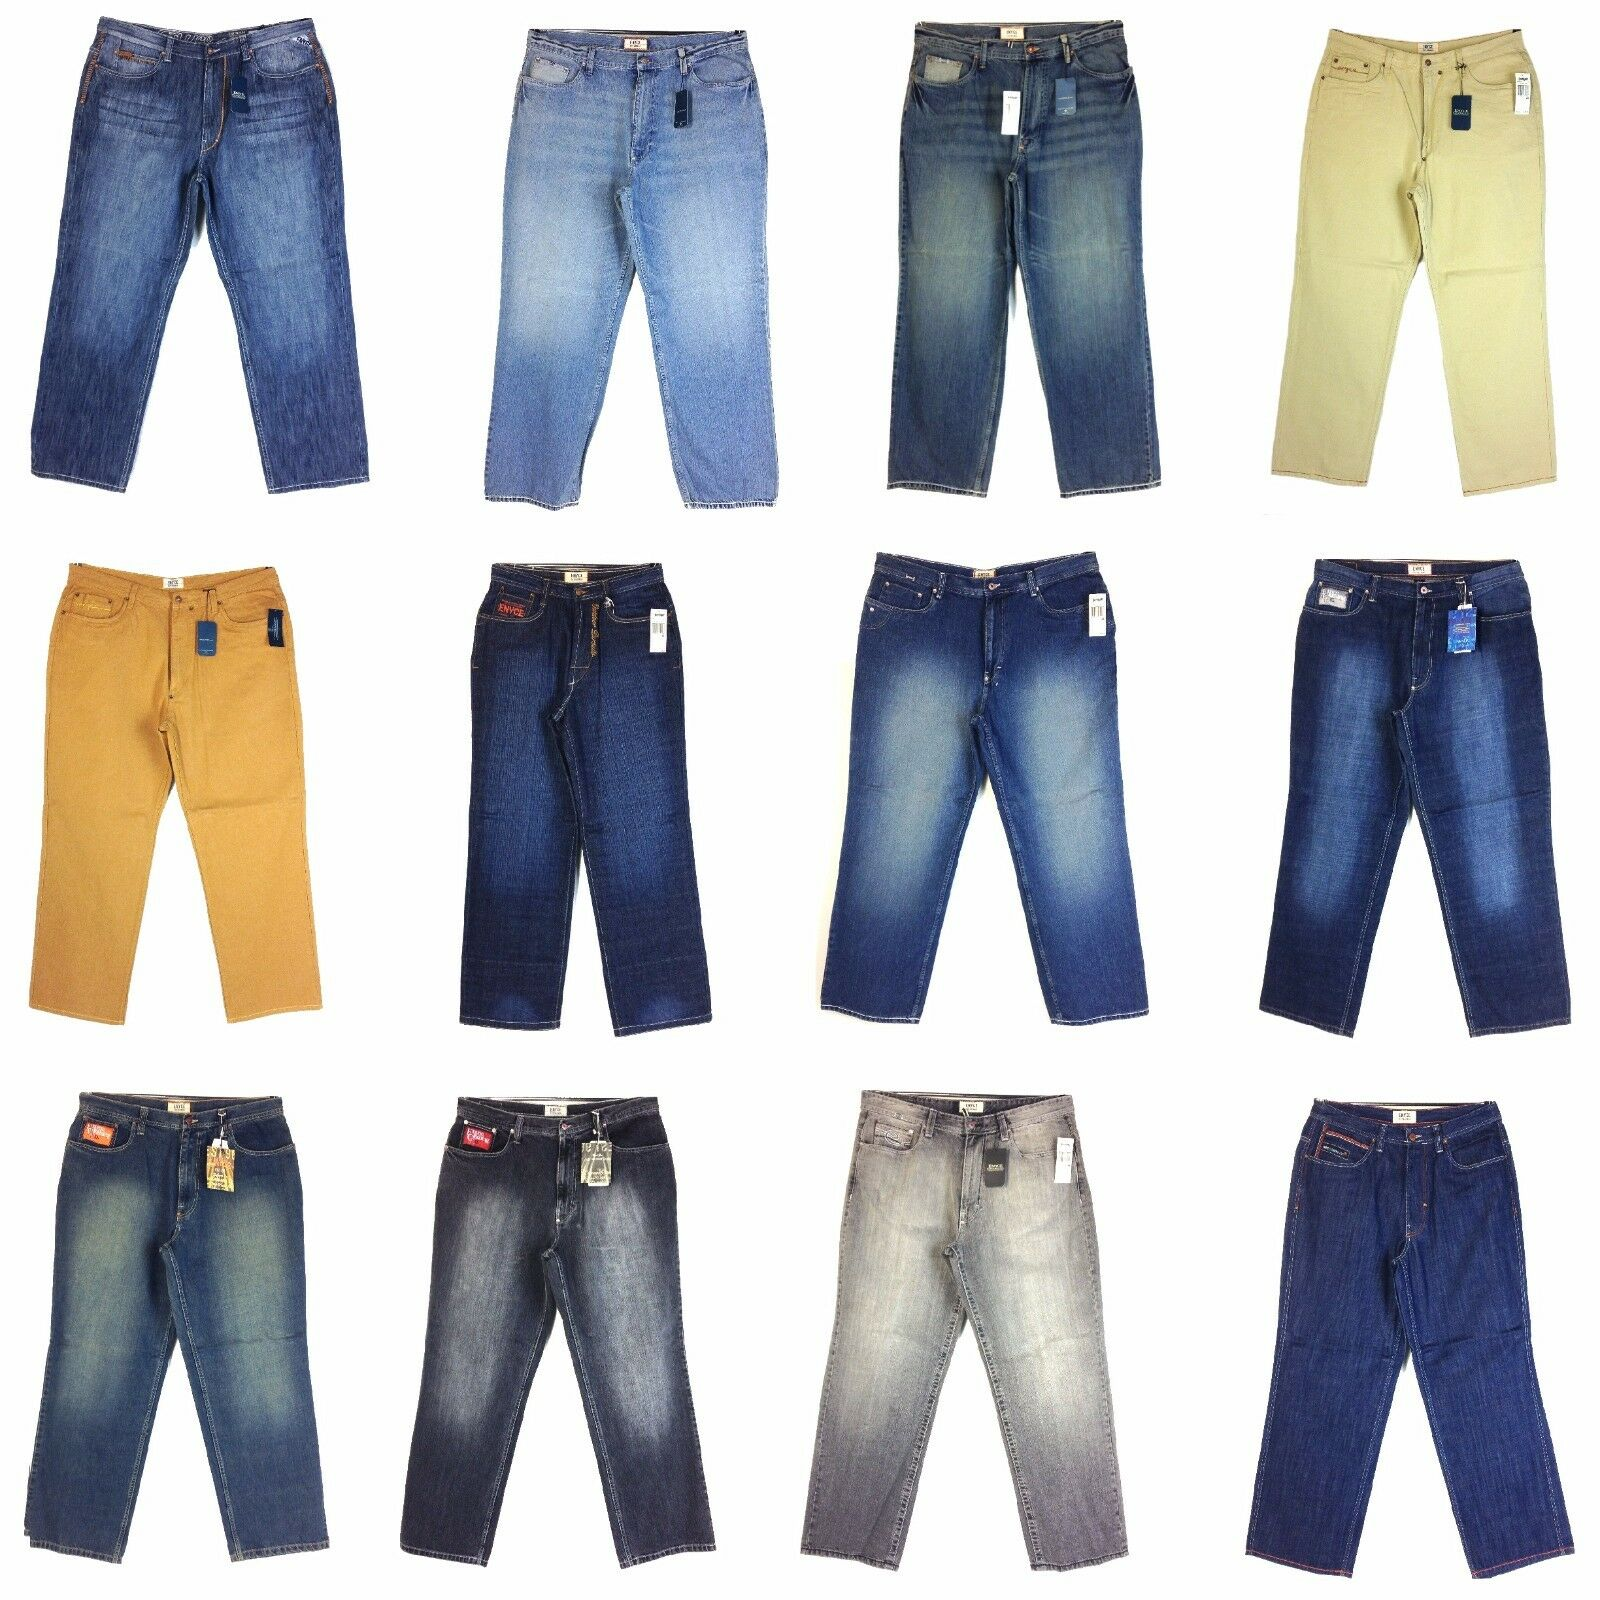 8448d435 ENYCE MEN'S DESIGNER NEW JEAN ASSORTED STYLES GROUP (5), nzcjcb3255-Jeans